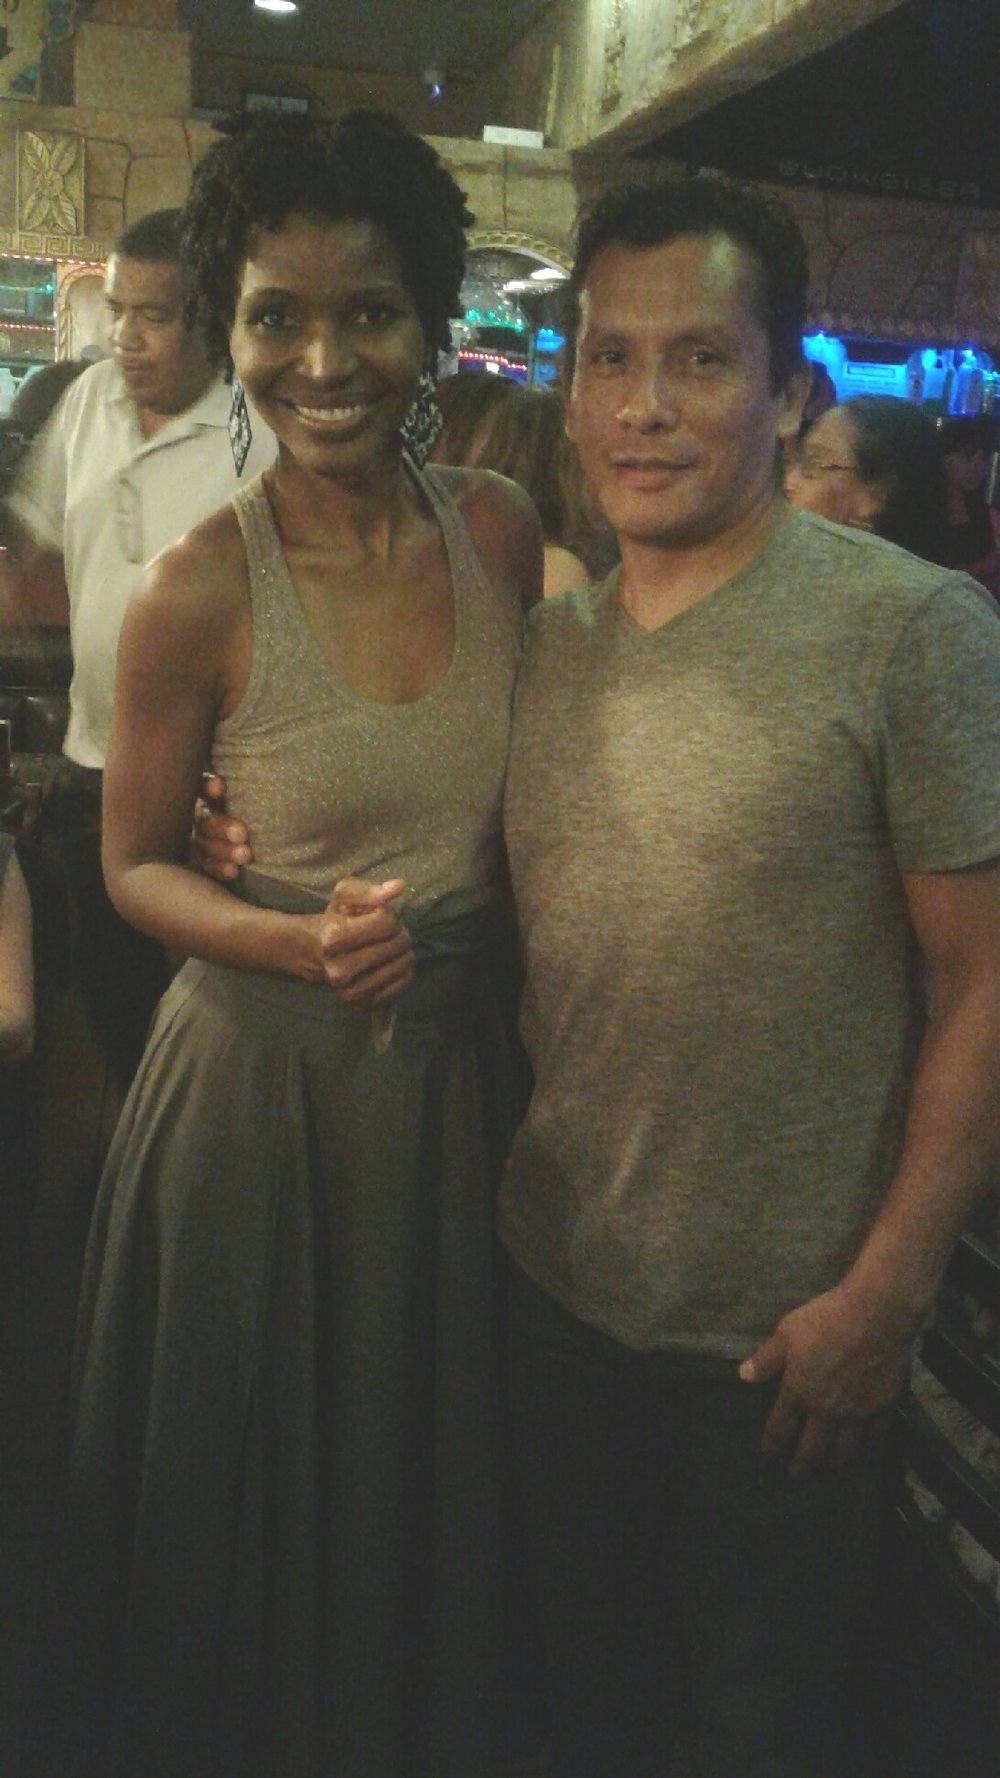 Here I'm pictured my FAVORITE DANCER, Raul, at our favorite dancing spot. We've known each other for more than 10 years!